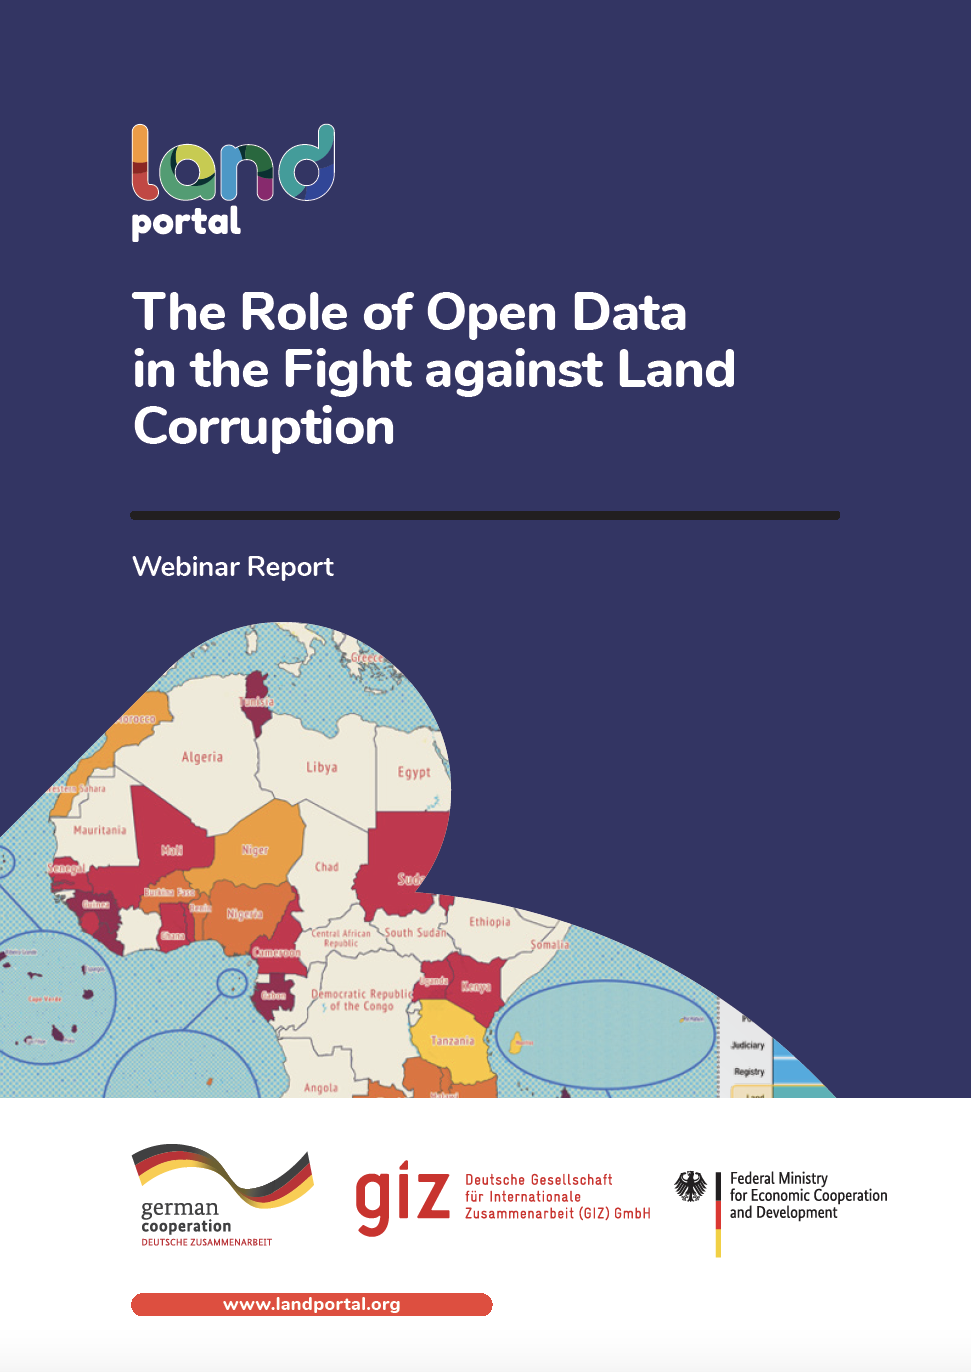 The Role of Open Data in the Fight against Land Corruption